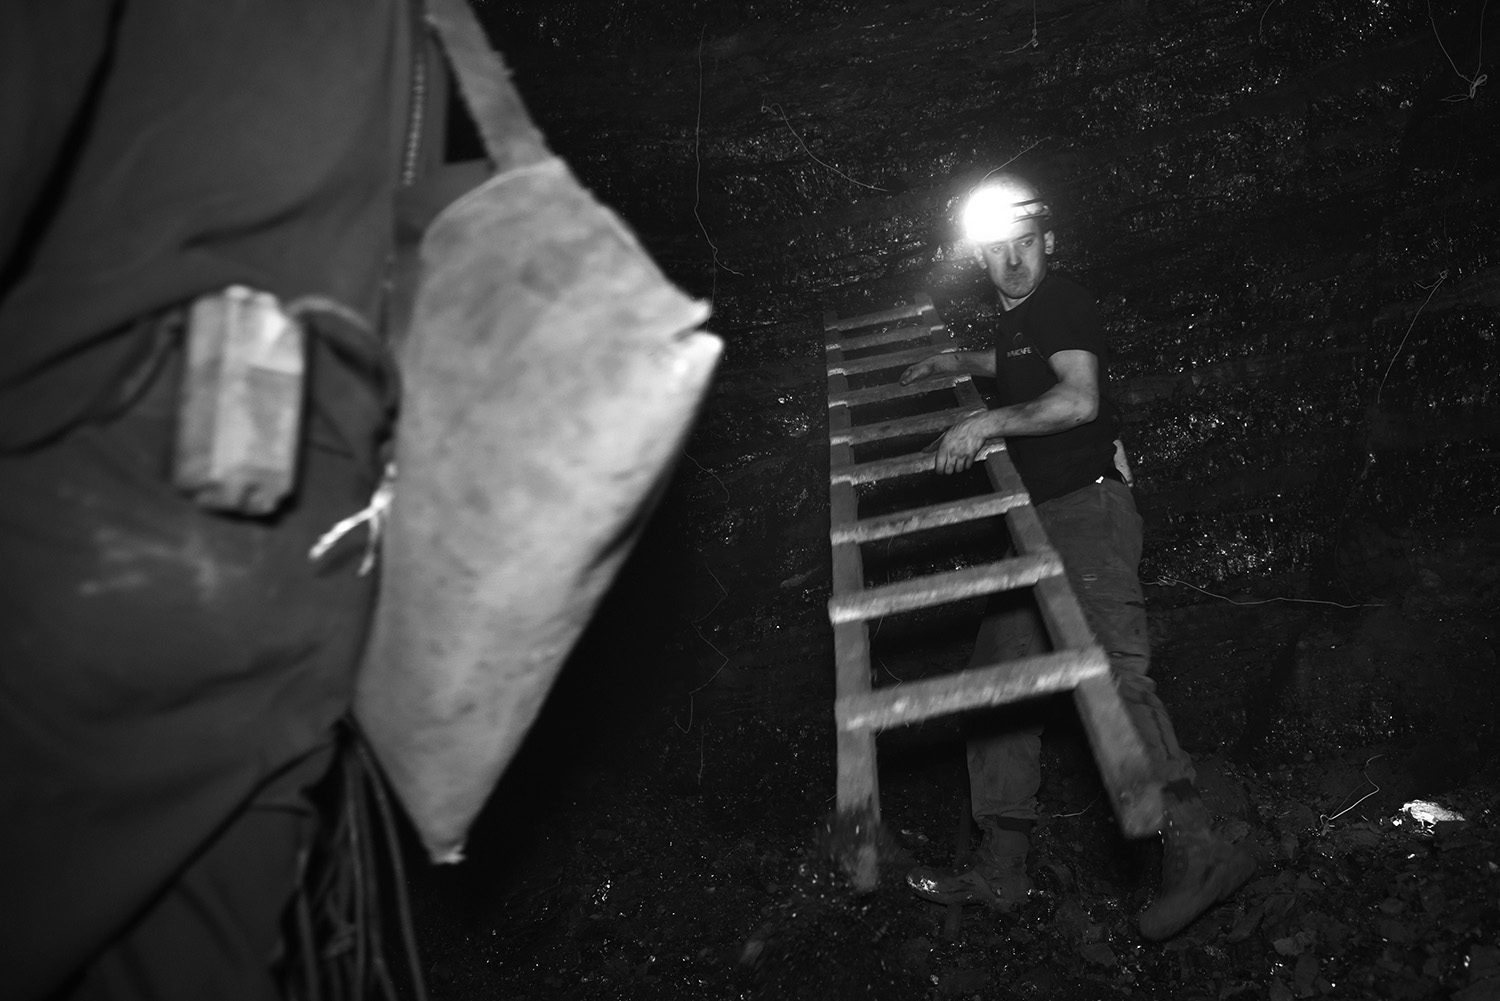 21-year-old Emir Kalota sets ladders to help the coal miner drill holes high on the wall of the coal mine.